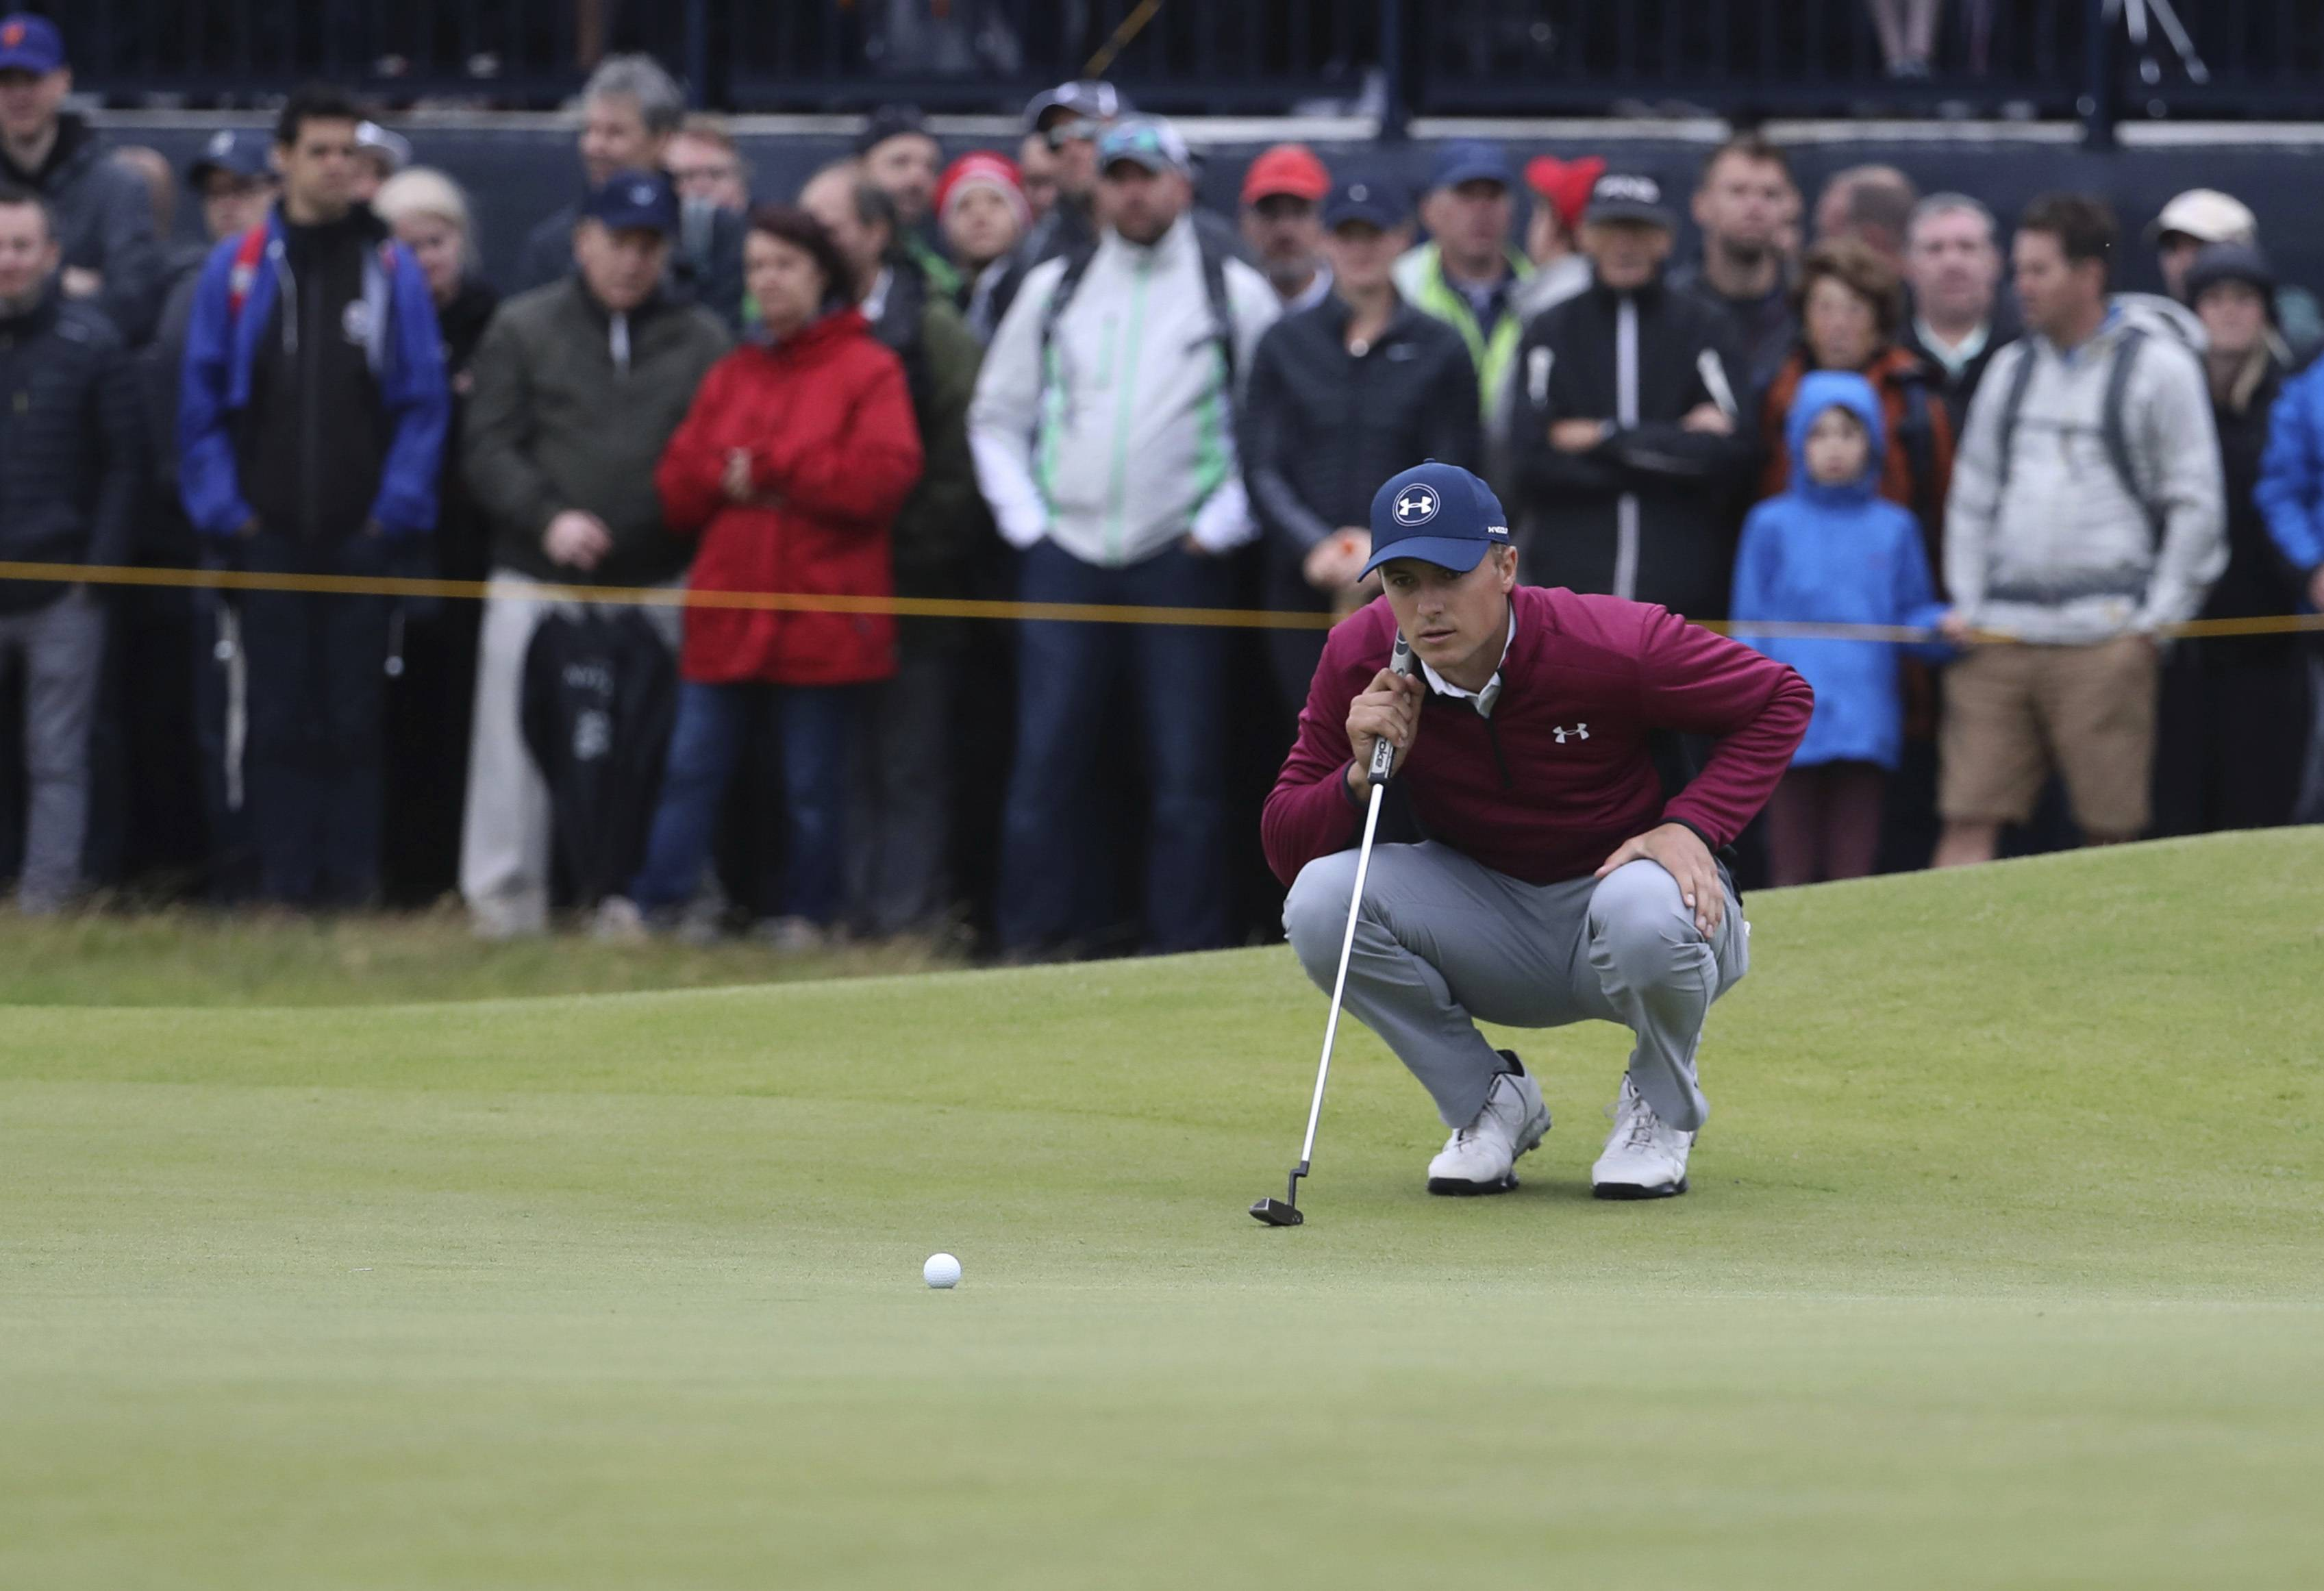 With a short game as sharp as it has been all year, and a 3-wood that turned out a lot better than it looked and led to an eagle, Jordan Spieth seized control with a 1-under 69 that gave him a two-shot lead over Matt Kuchar going into the weekend.